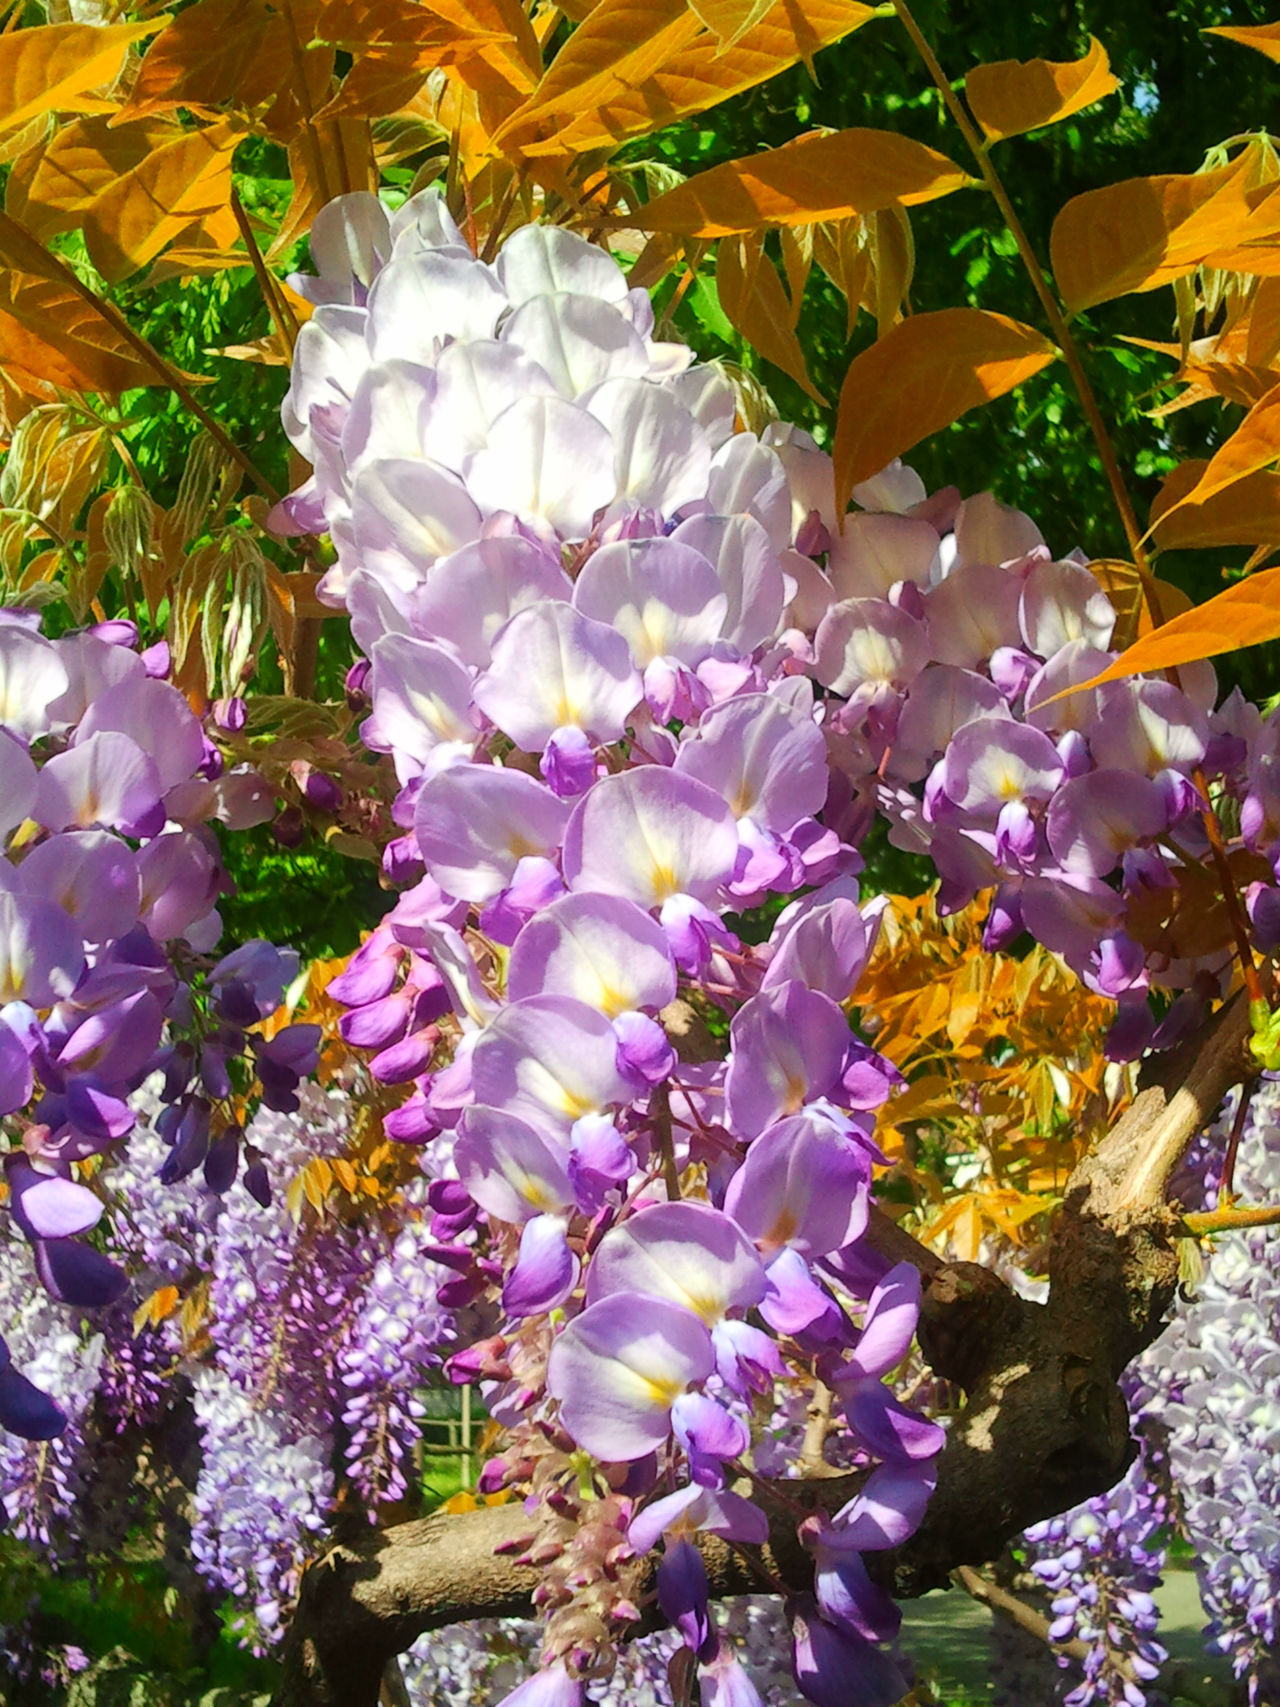 Glicine prima della tempesta ... Abundance Beauty In Nature Blooming Blossom Botany Day Flower Fragility Freshness Garden Flowers Glicine Growth In Bloom Nature No People Outdoors Plant Purple Showcase April Spring Flowers Spring Into Spring Wisteria Wisteria Flowers